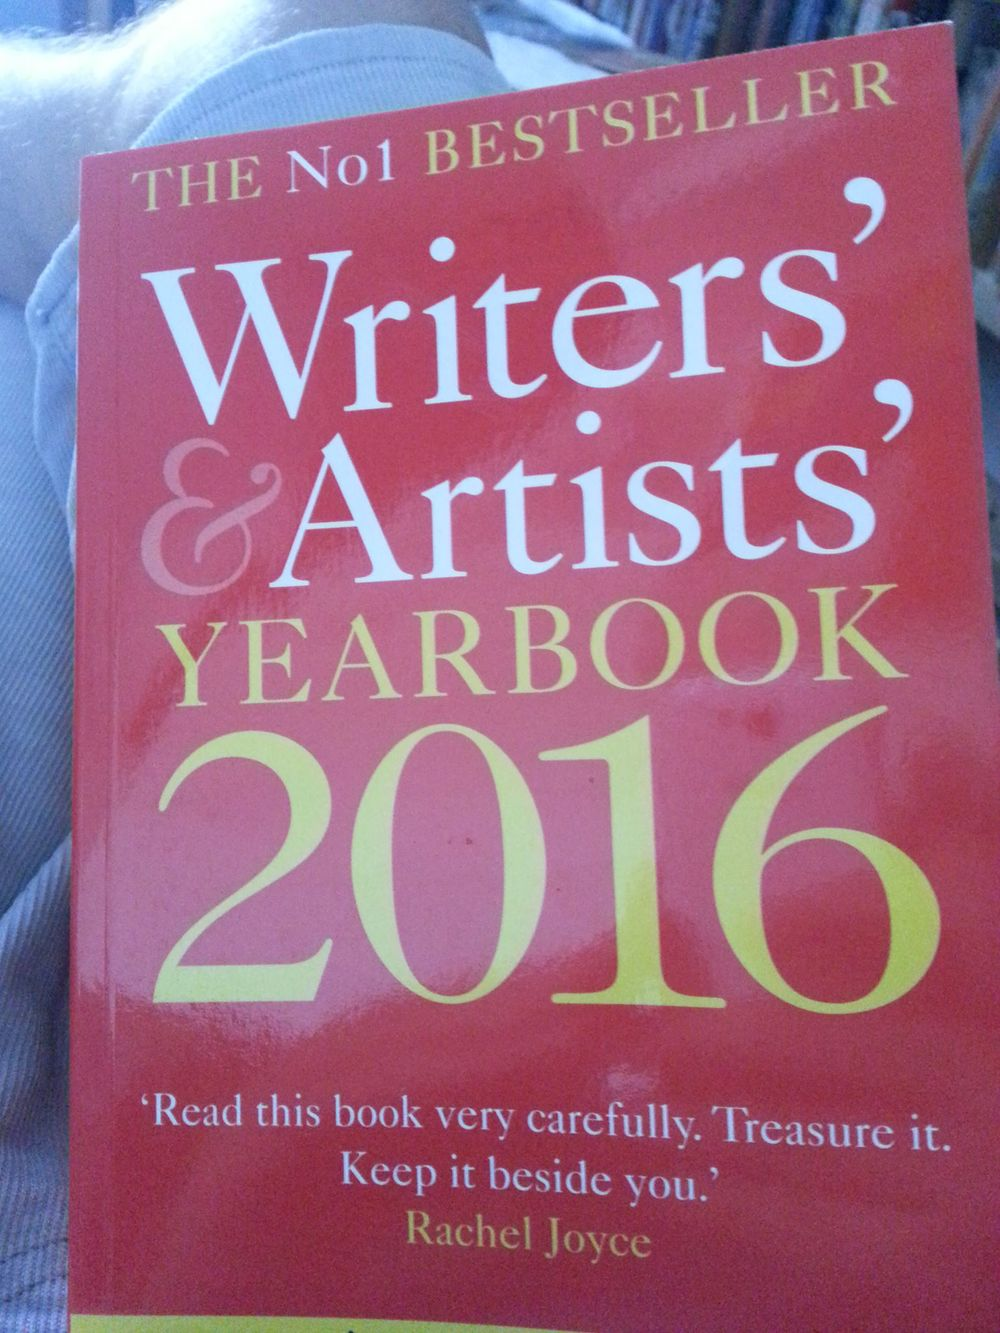 writer and artists yearbook 2016 2.jpg